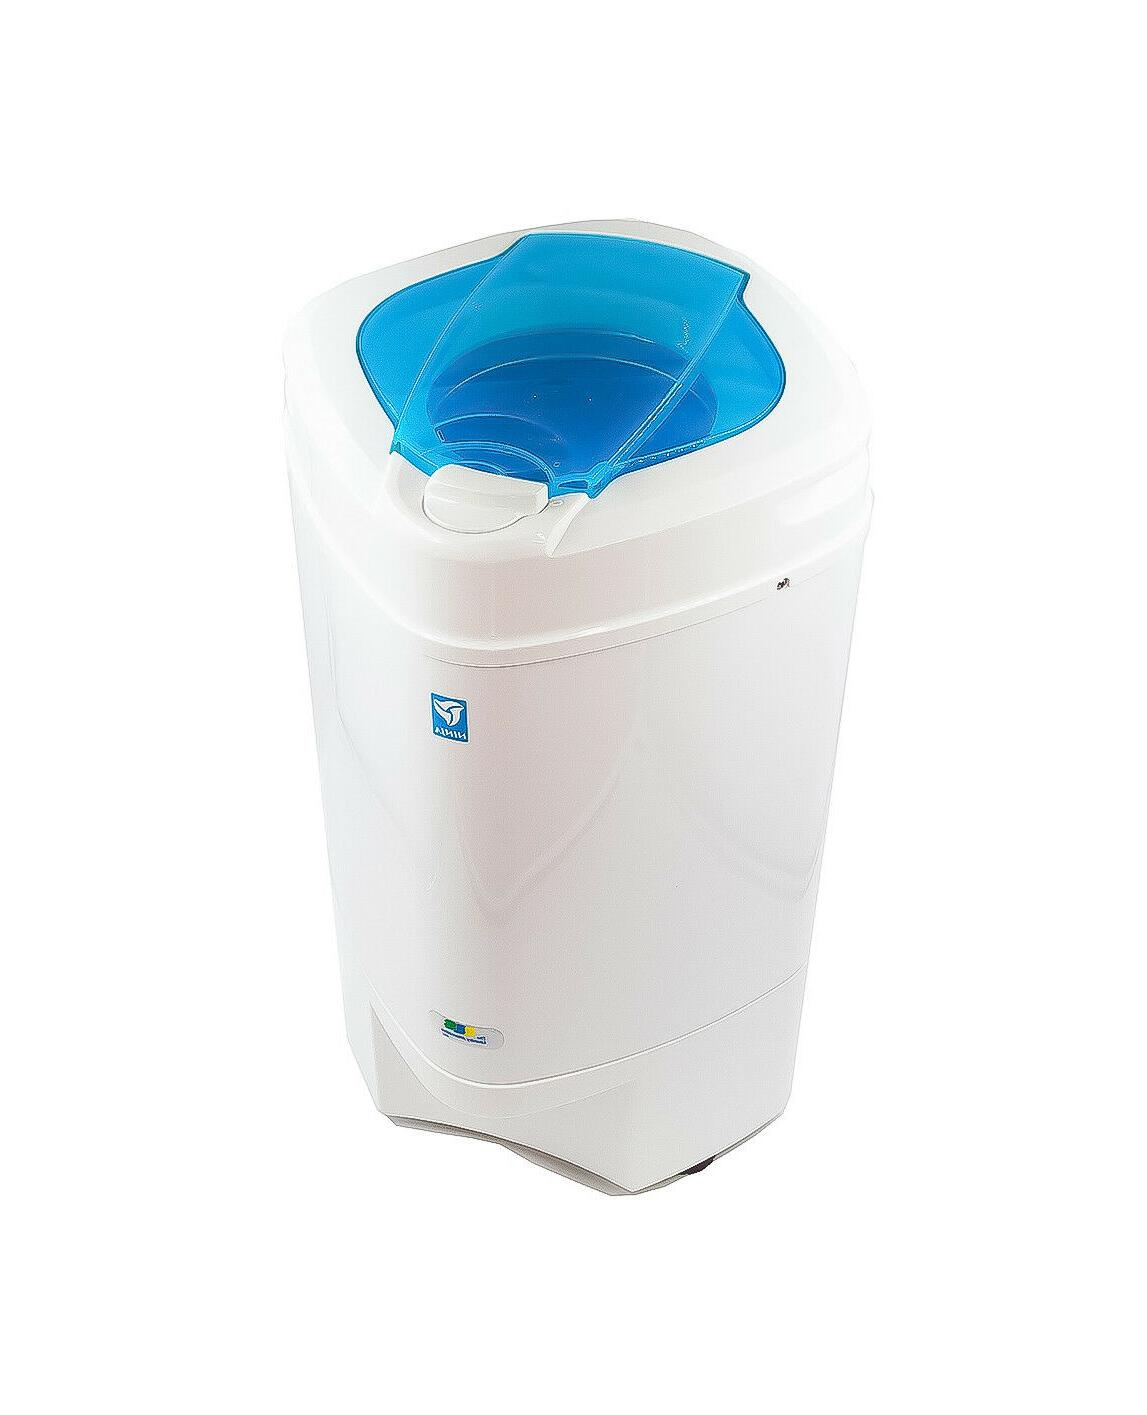 Ninja 3200 RPM Centrifugal Dryer with High Suspension System